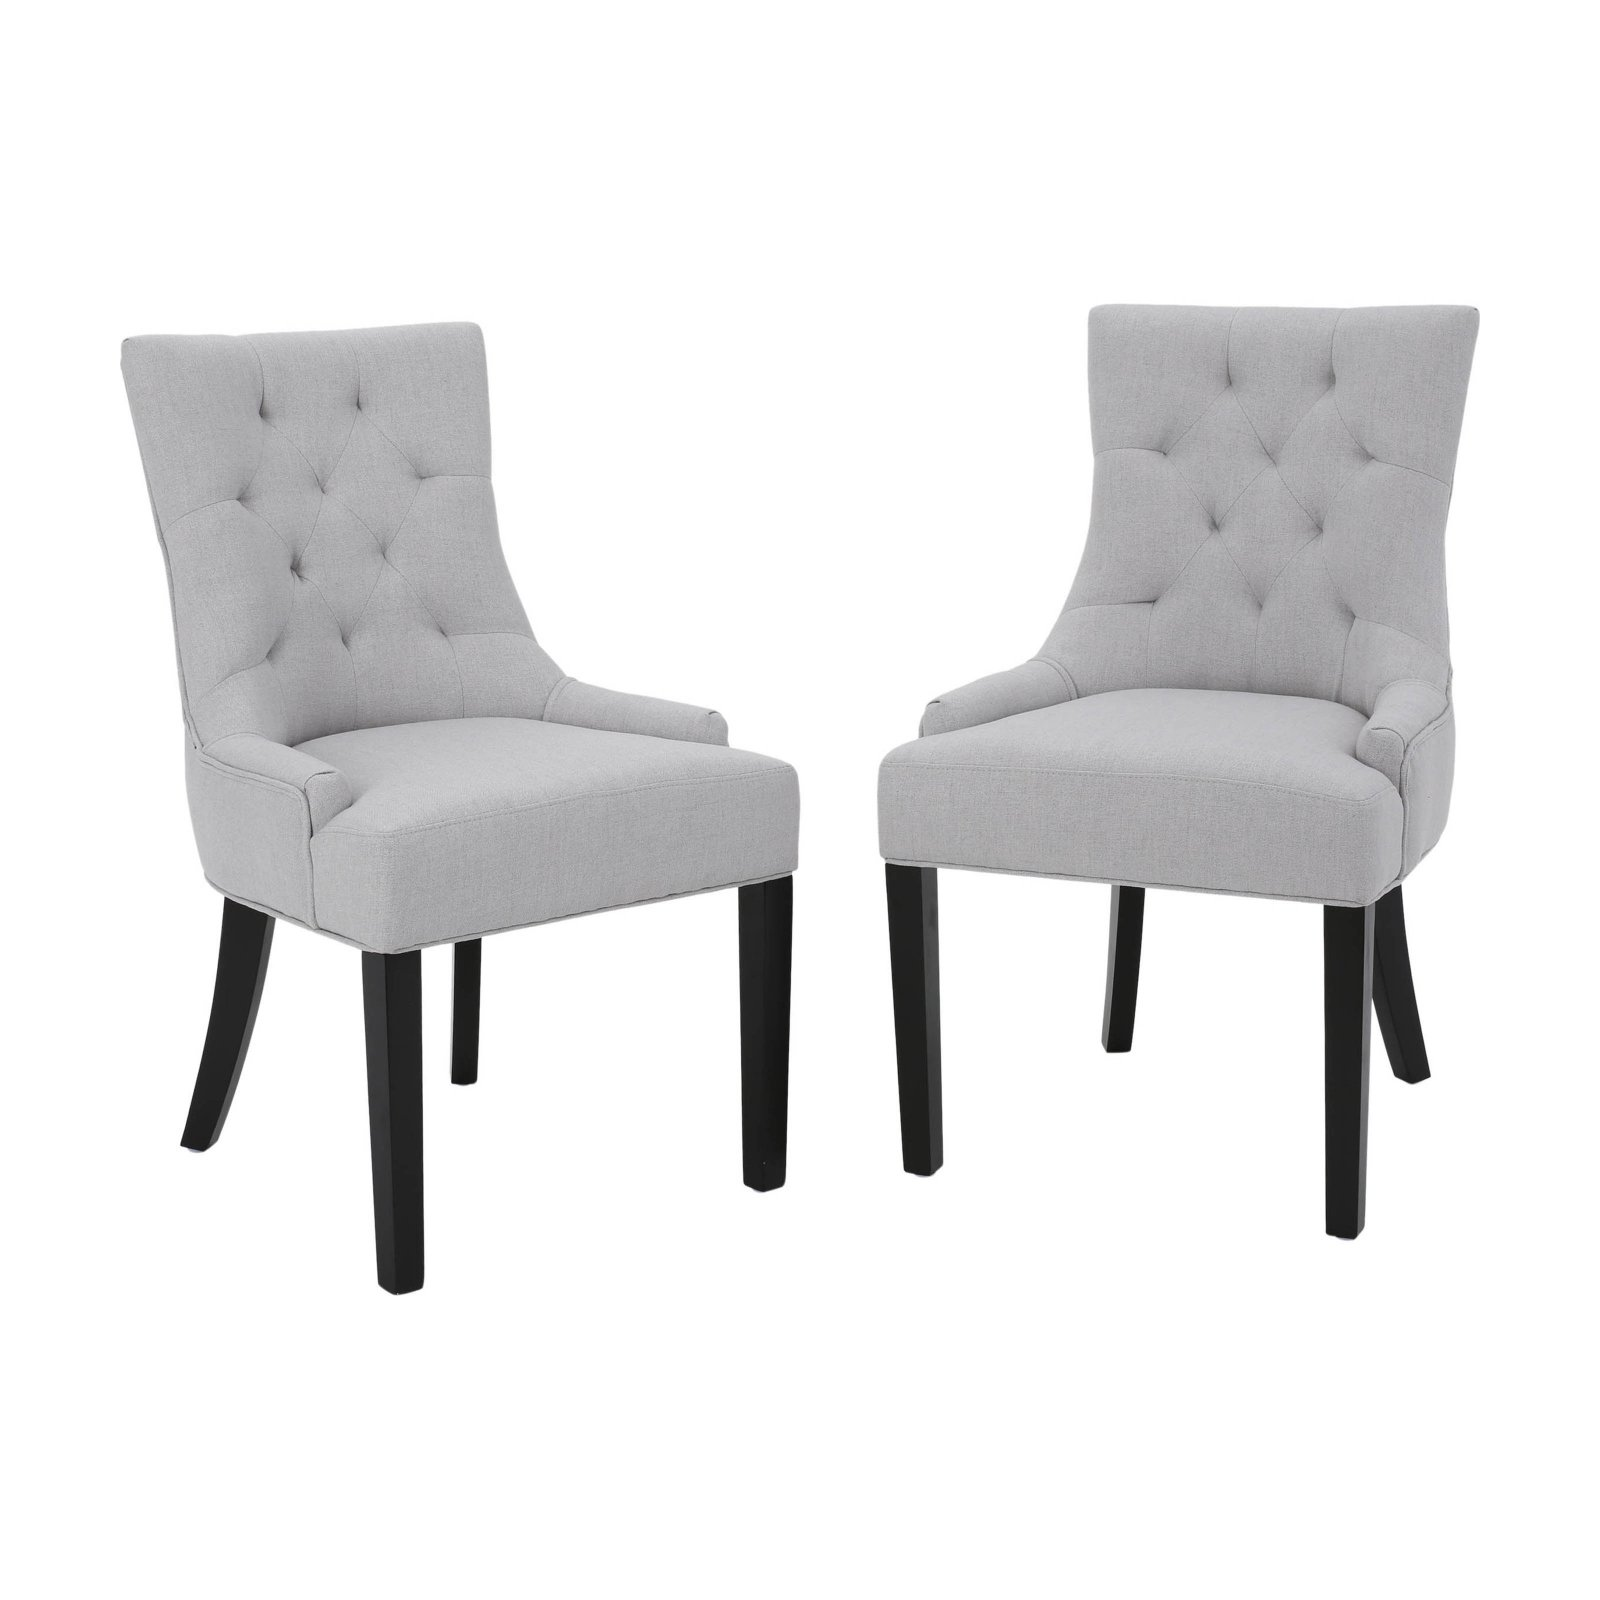 Hayden Tufted Dining Side Chairs - Set of 2